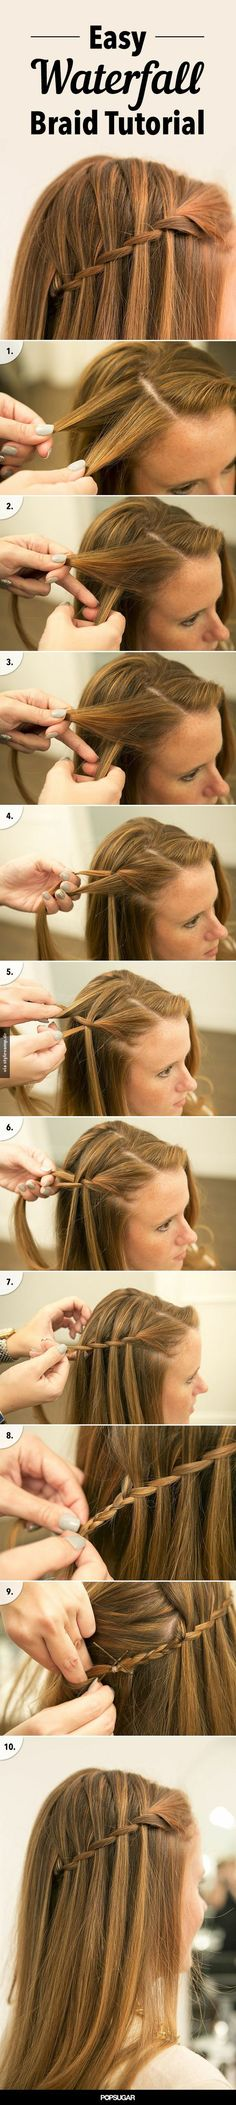 Try out this waterfall braid tutorial!